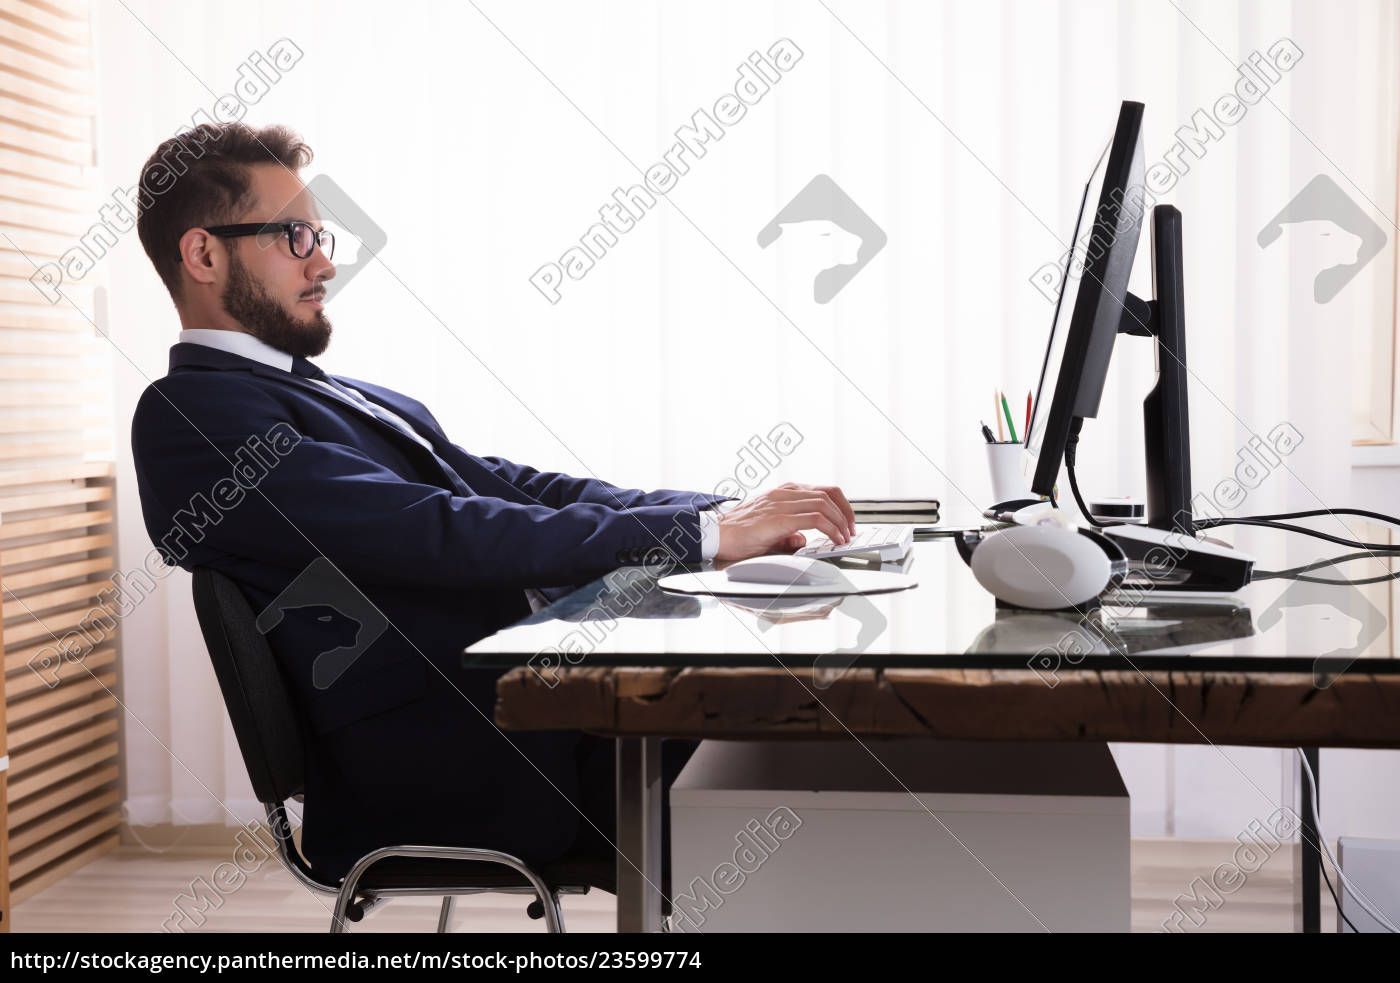 bad, posture, while, working, on, computer - 23599774